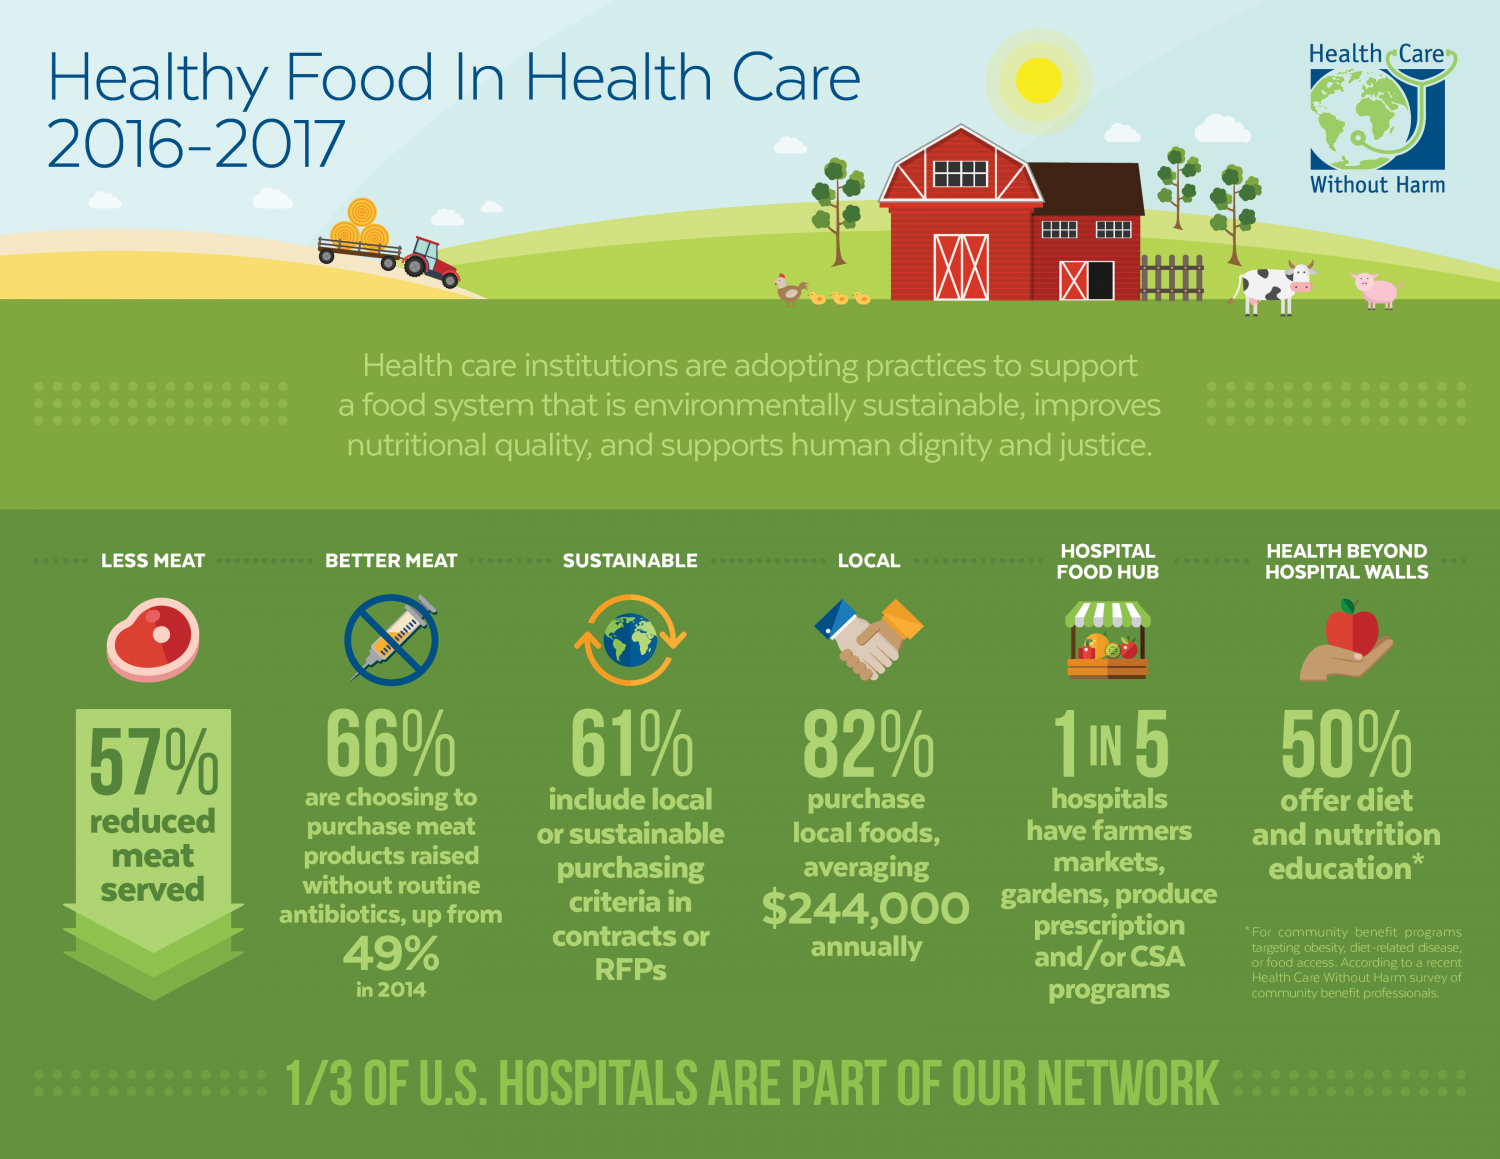 Trends show U.S. hospitals are changing the food system Infographic